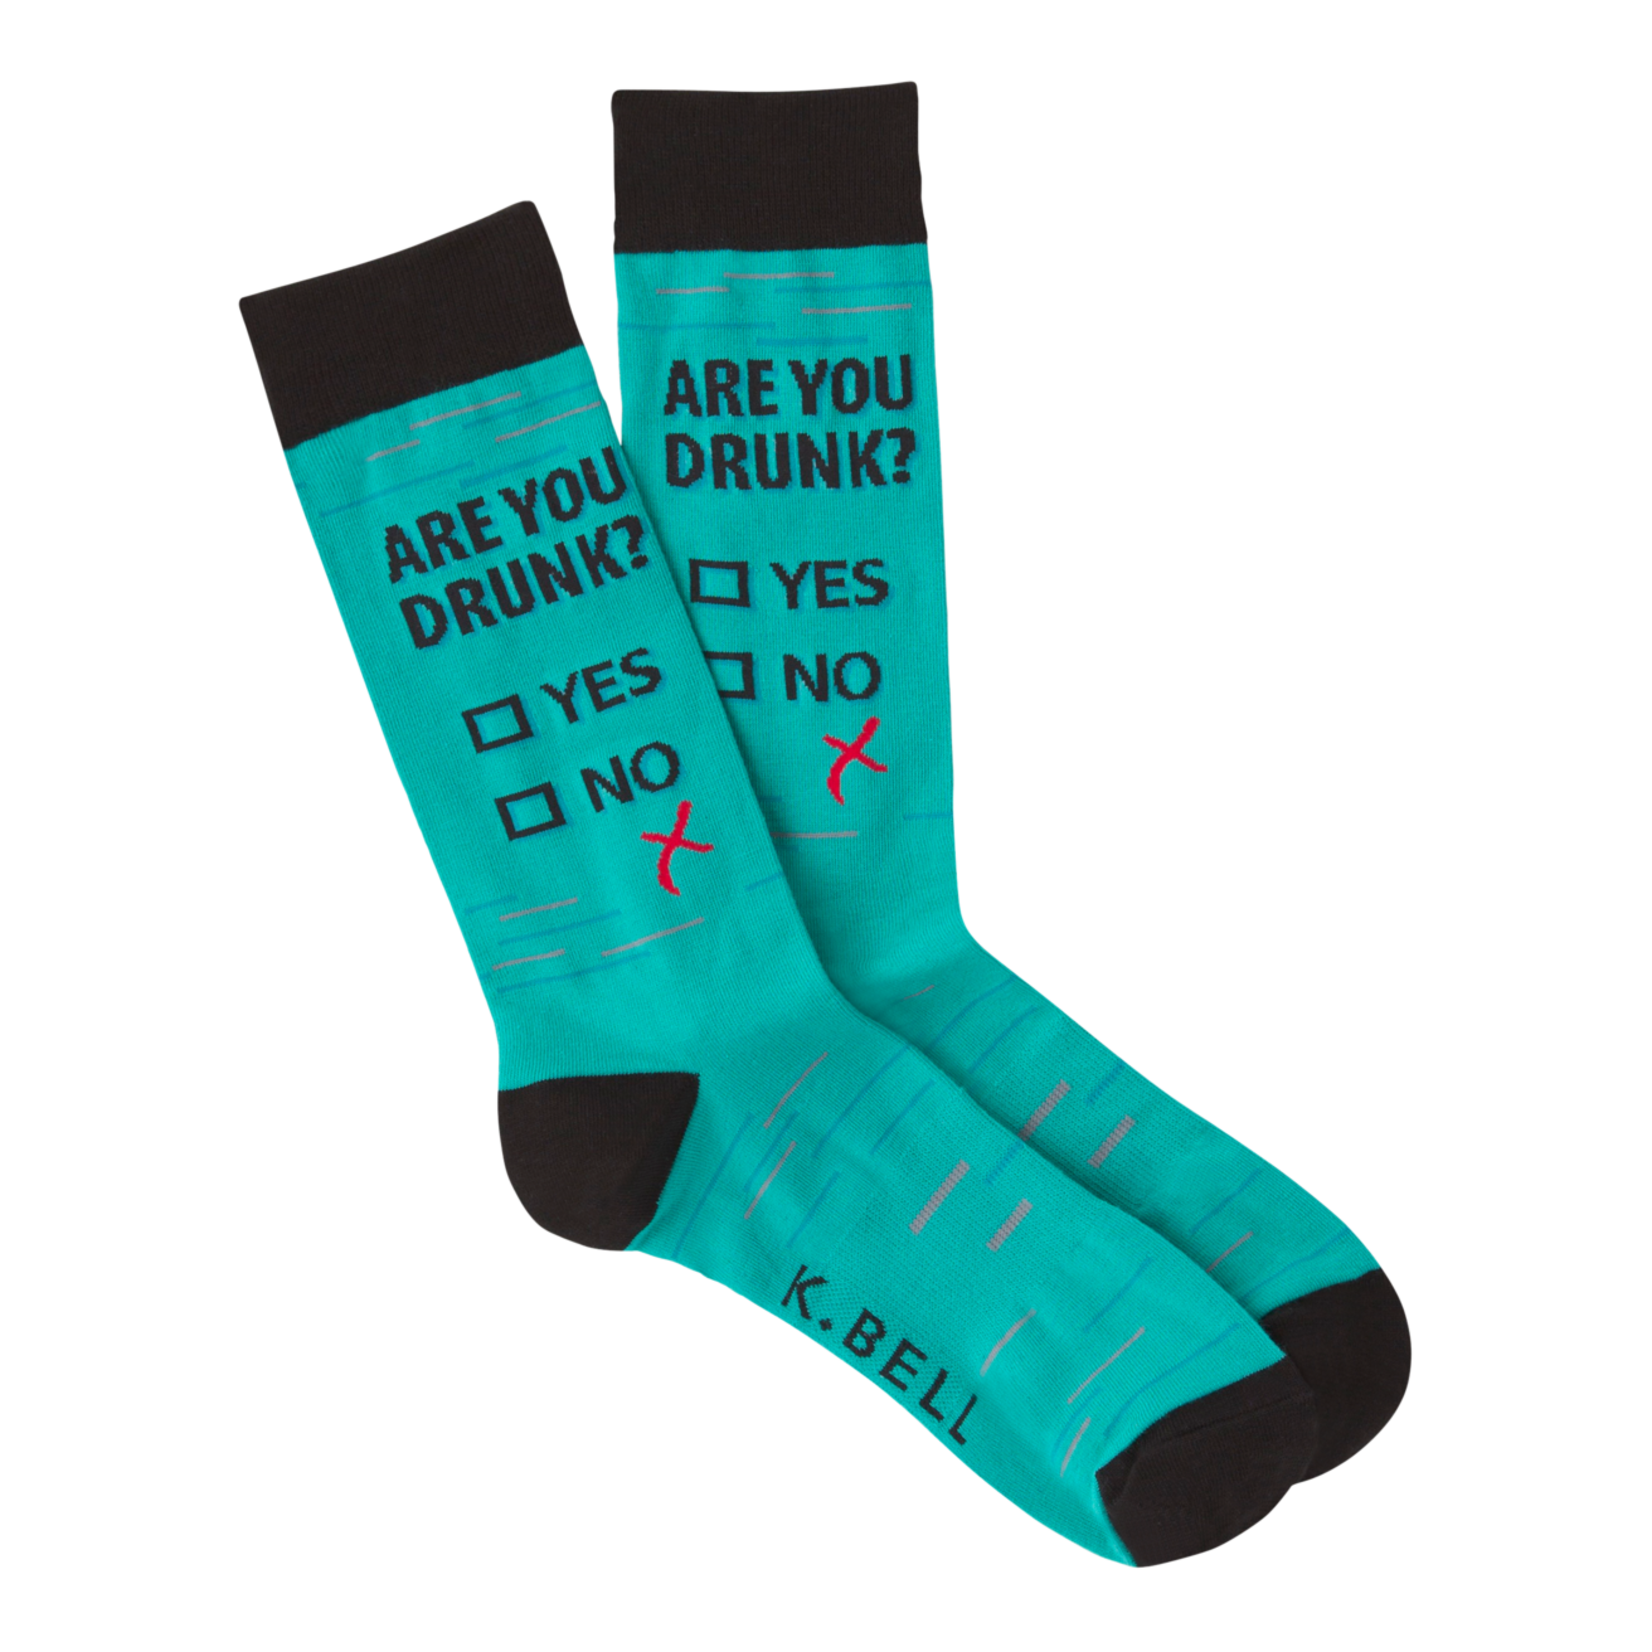 Socks (Mens) - Are You Drunk?